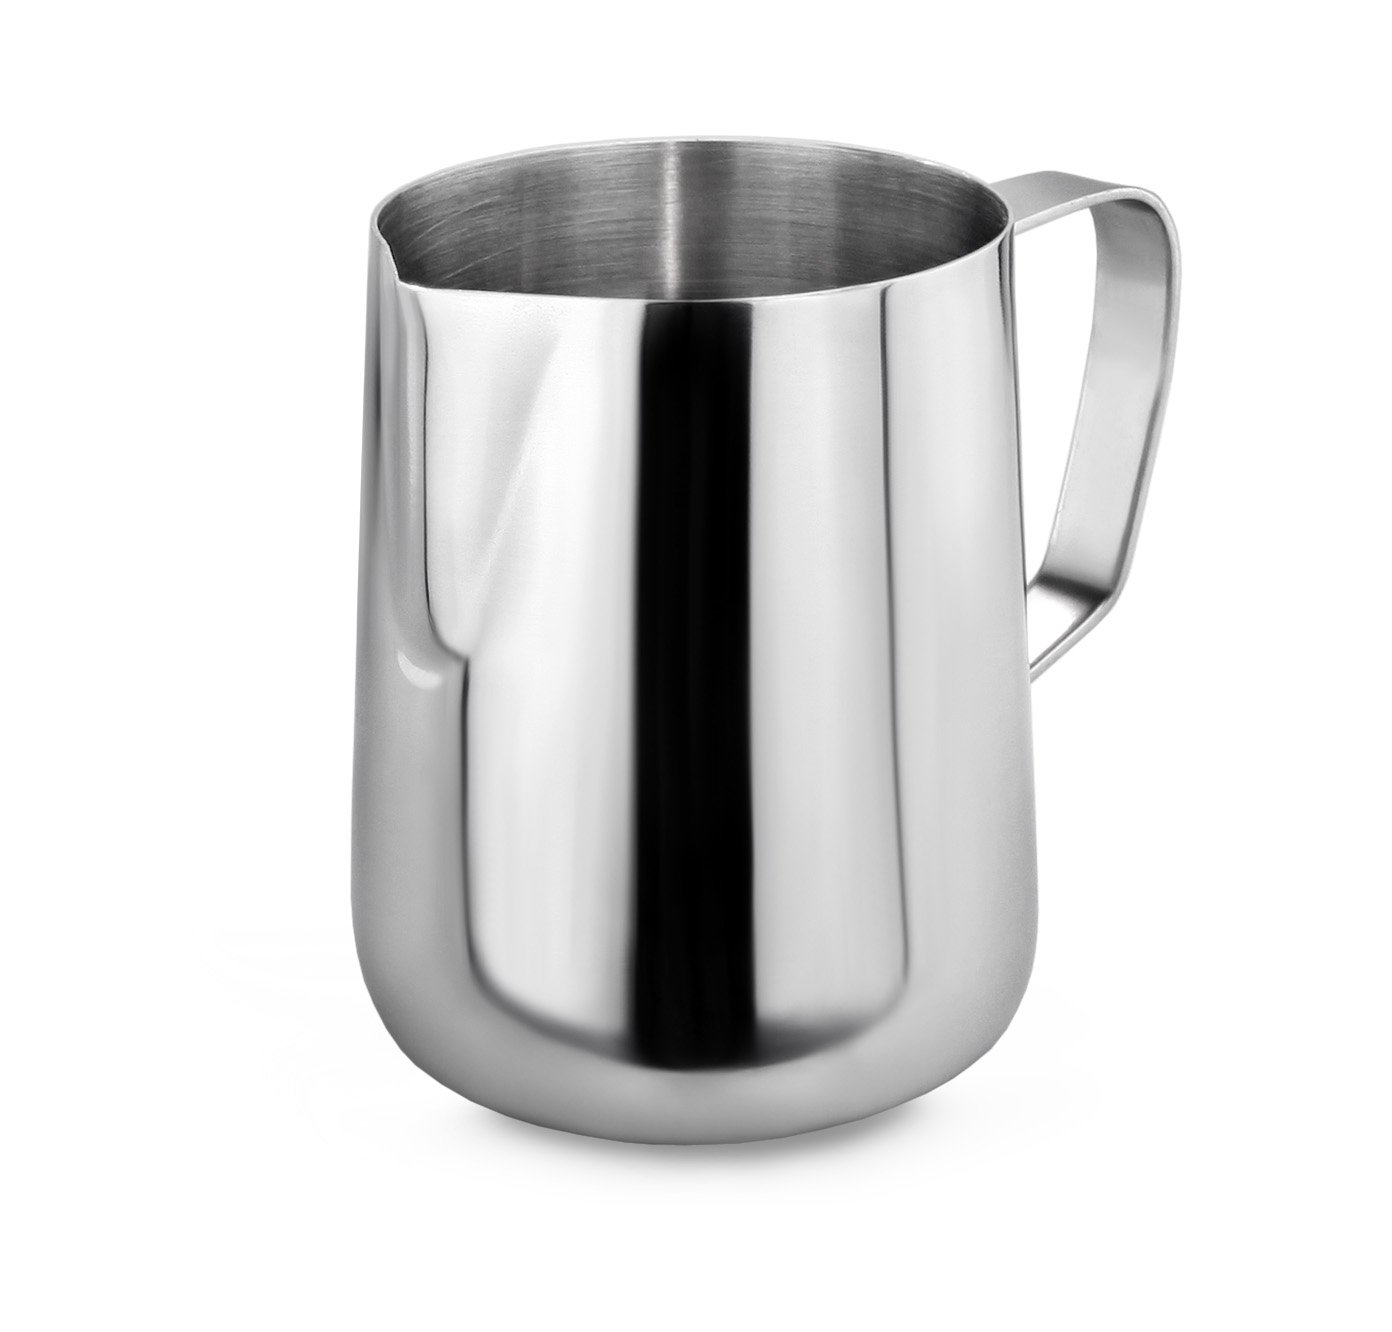 B00WNGP26Q New Star Foodservice 28805 Commercial Grade Stainless Steel 18/8 Frothing Pitcher, 12-Ounce 61S1syjkDtL